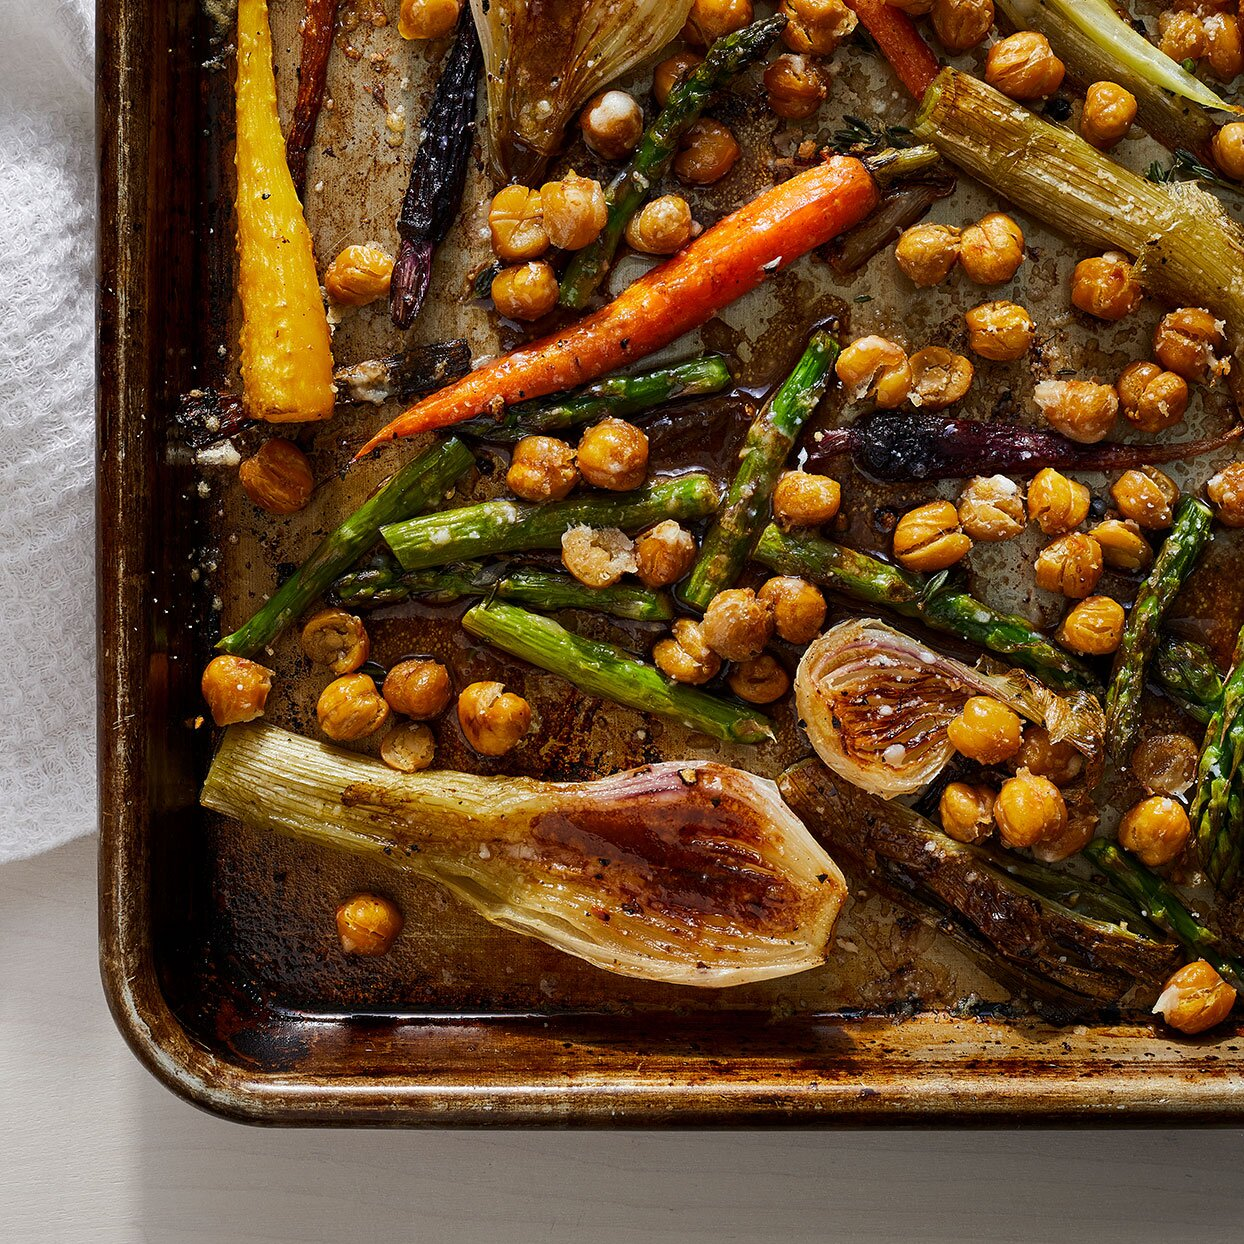 Sheet-Pan Balsamic-Parmesan Roasted Chickpeas & Vegetables